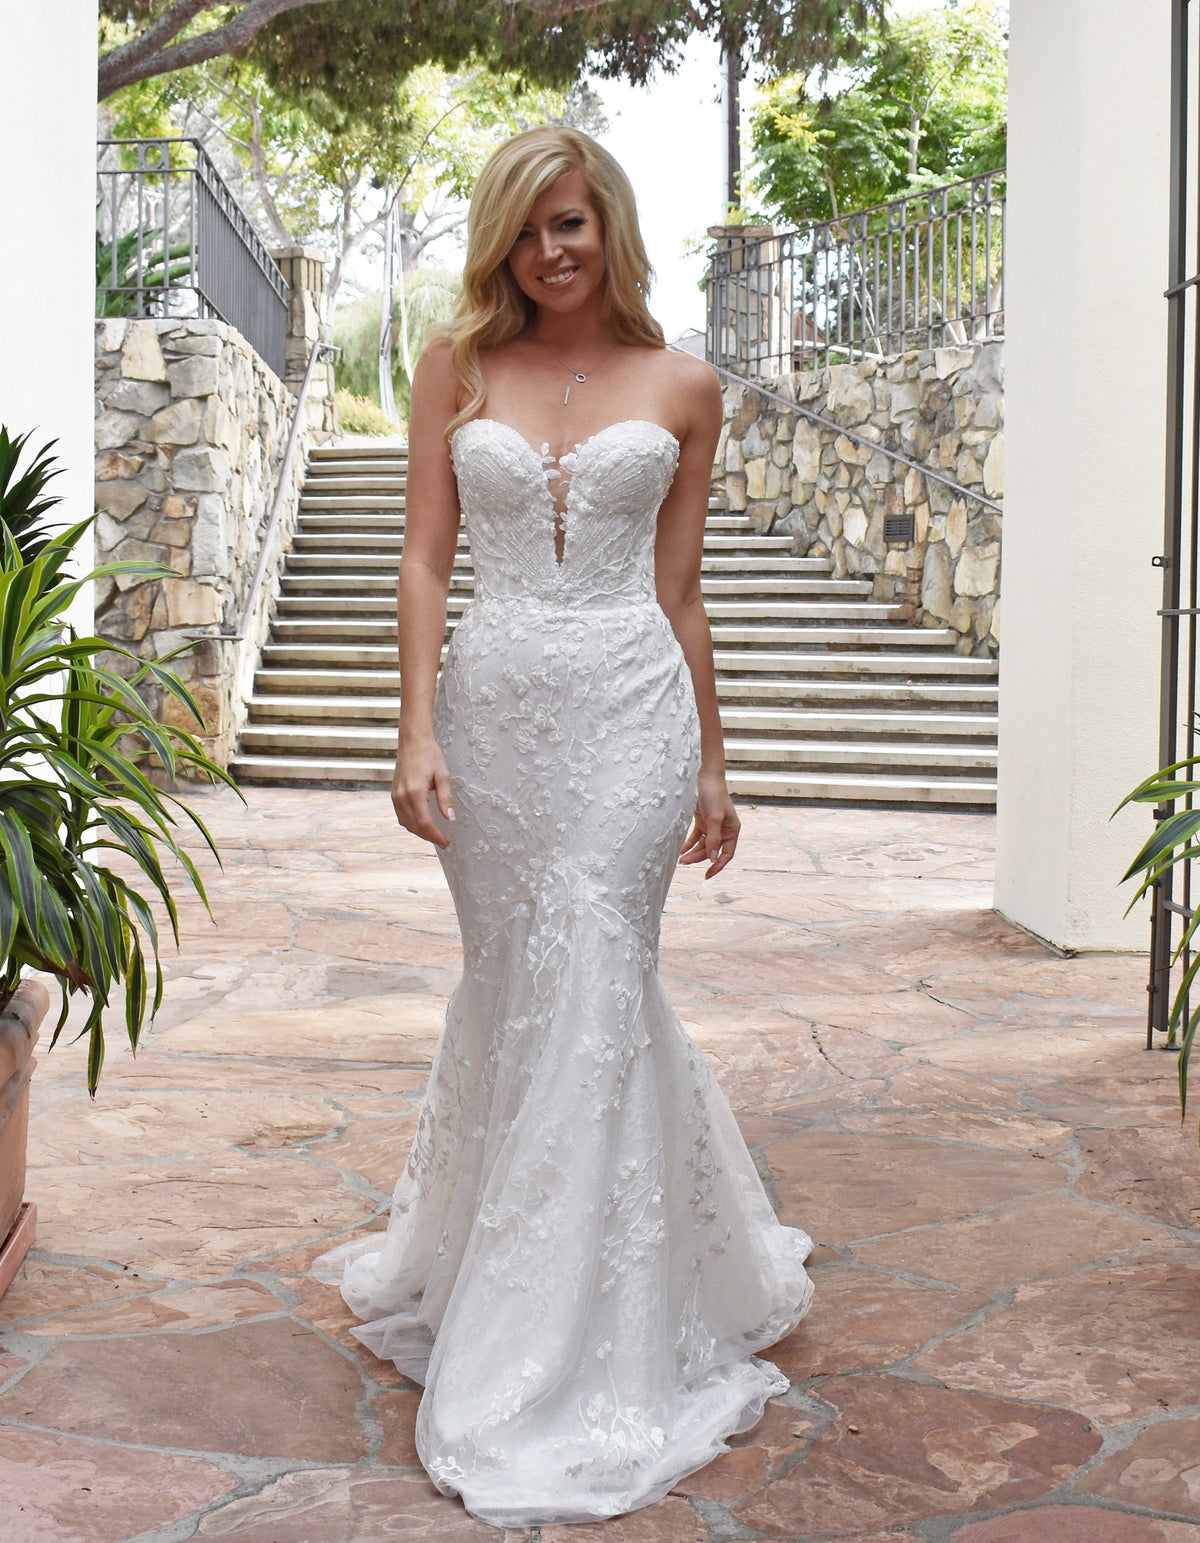 Rene atelier bridal gown neveah